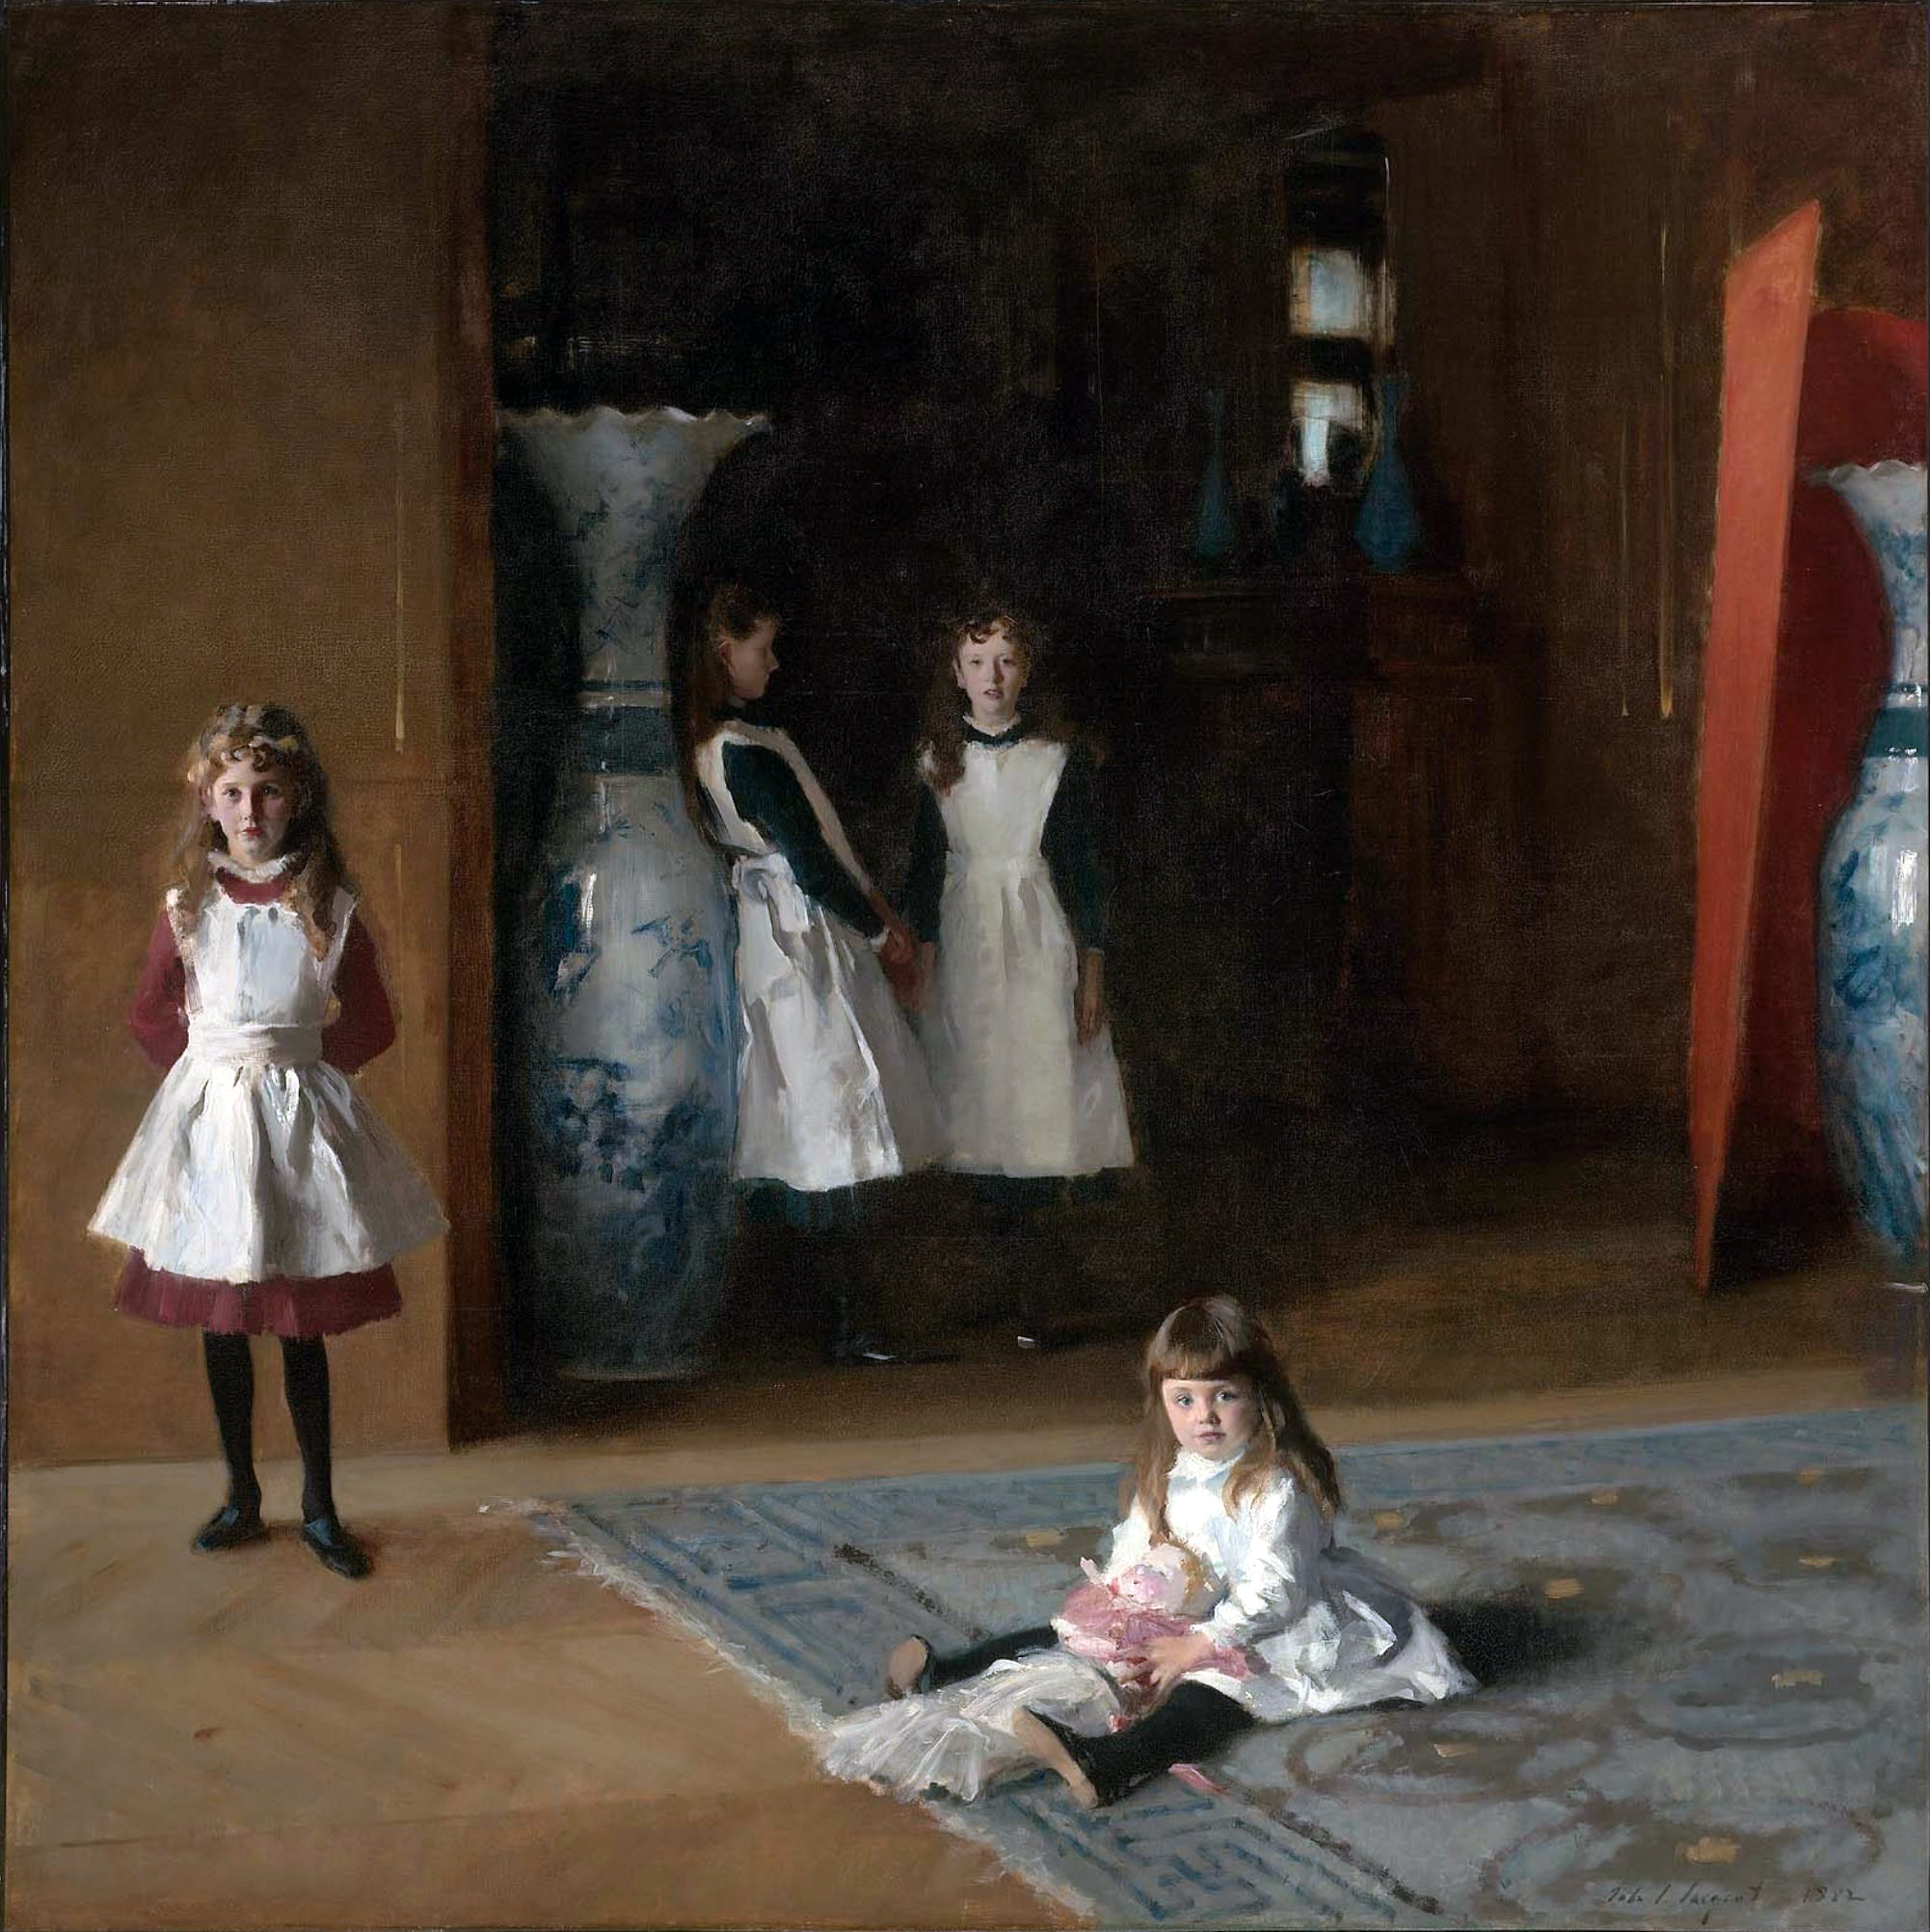 http://upload.wikimedia.org/wikipedia/commons/9/96/The_Daughters_of_Edward_Darley_Boit,_John_Singer_Sargent,_1882_(unfree_frame_crop).jpg